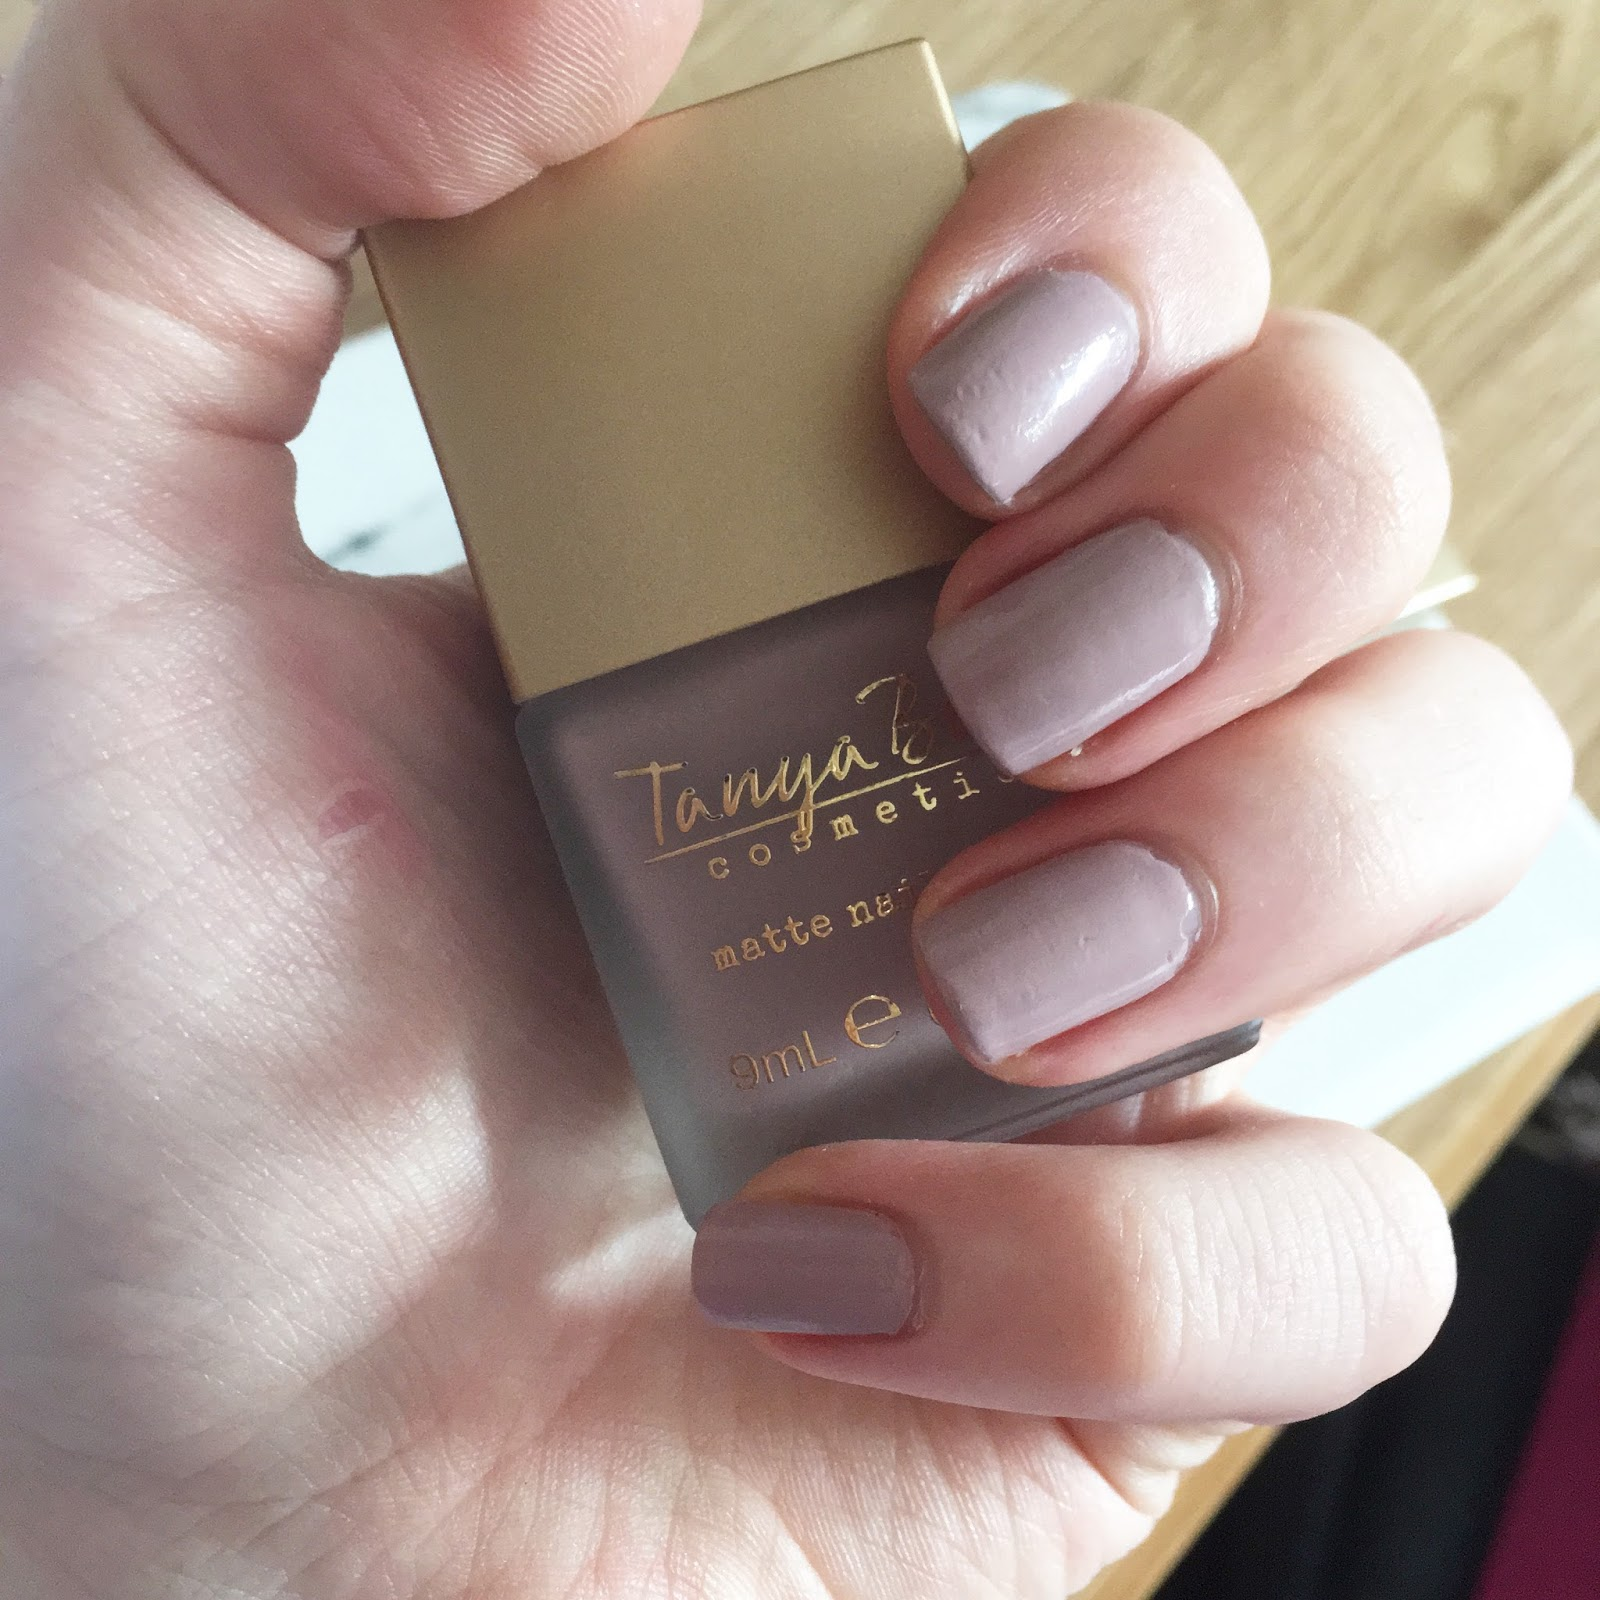 TANYA BURR COSMETICS : SOFT LUXE COLLECTION• - emmalanglands